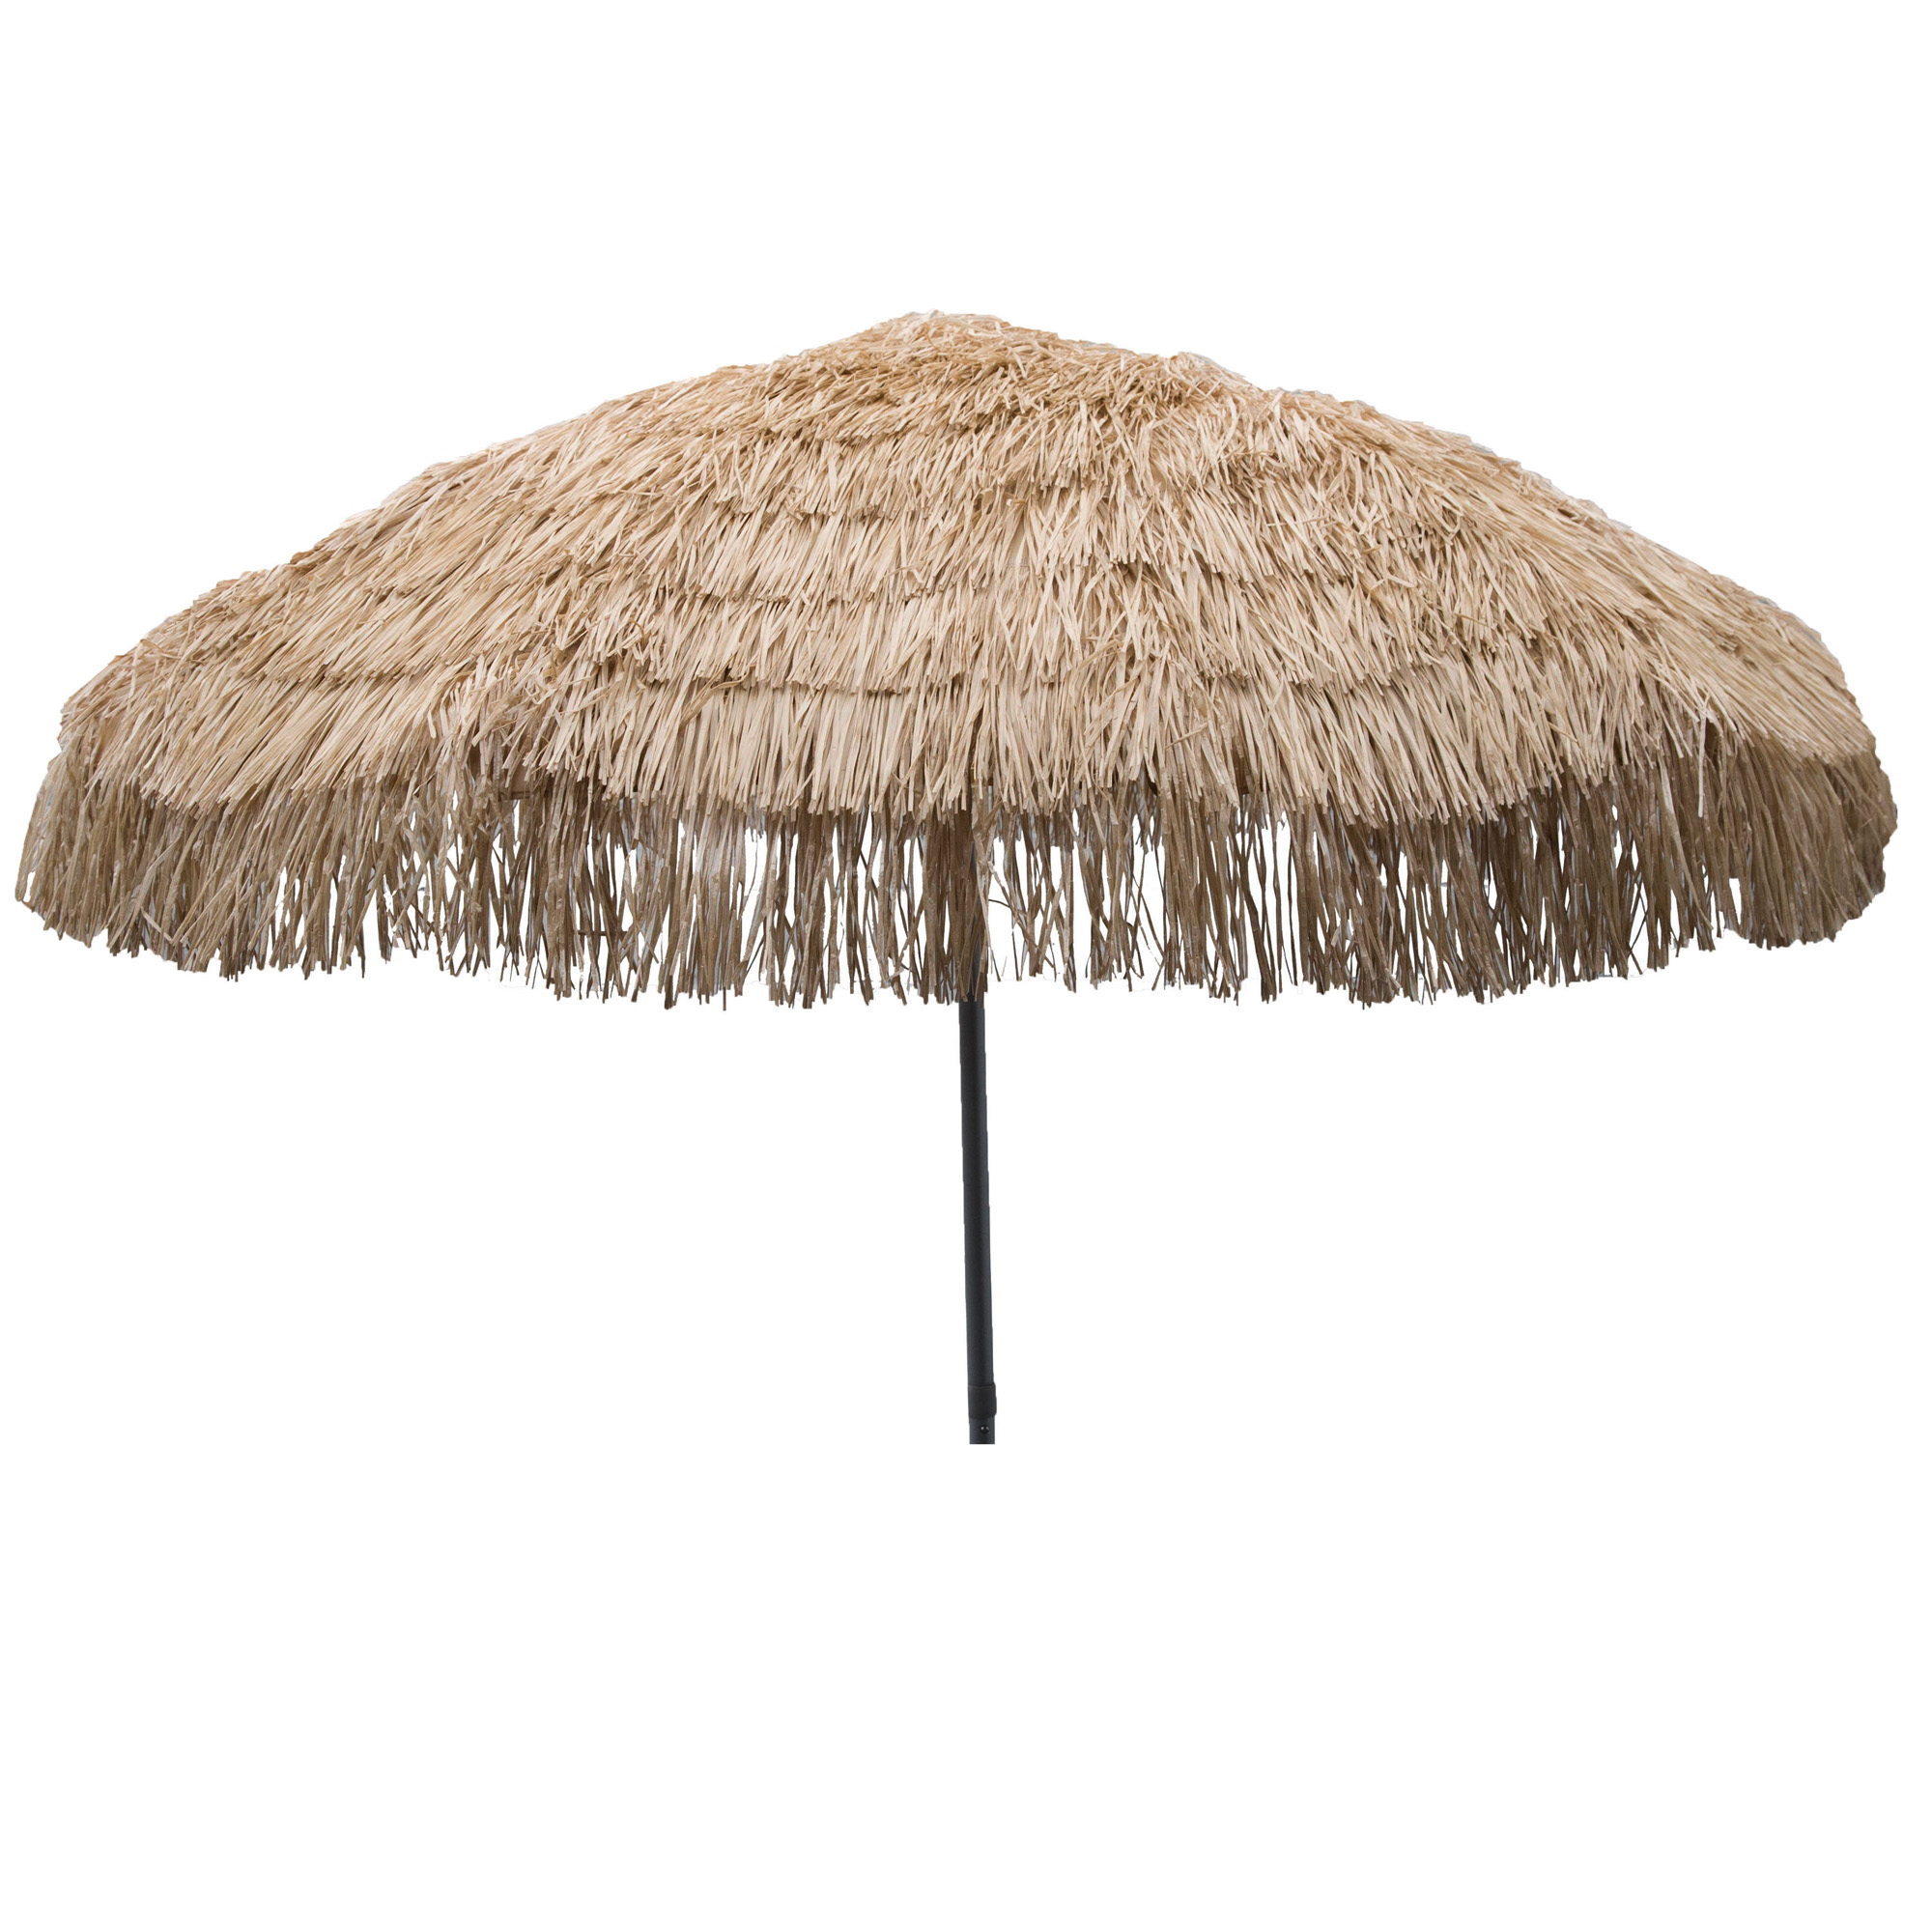 "DestinationGear Palapa Tiki Umbrella 7'6"" Whiskey Brown Patio Pole"